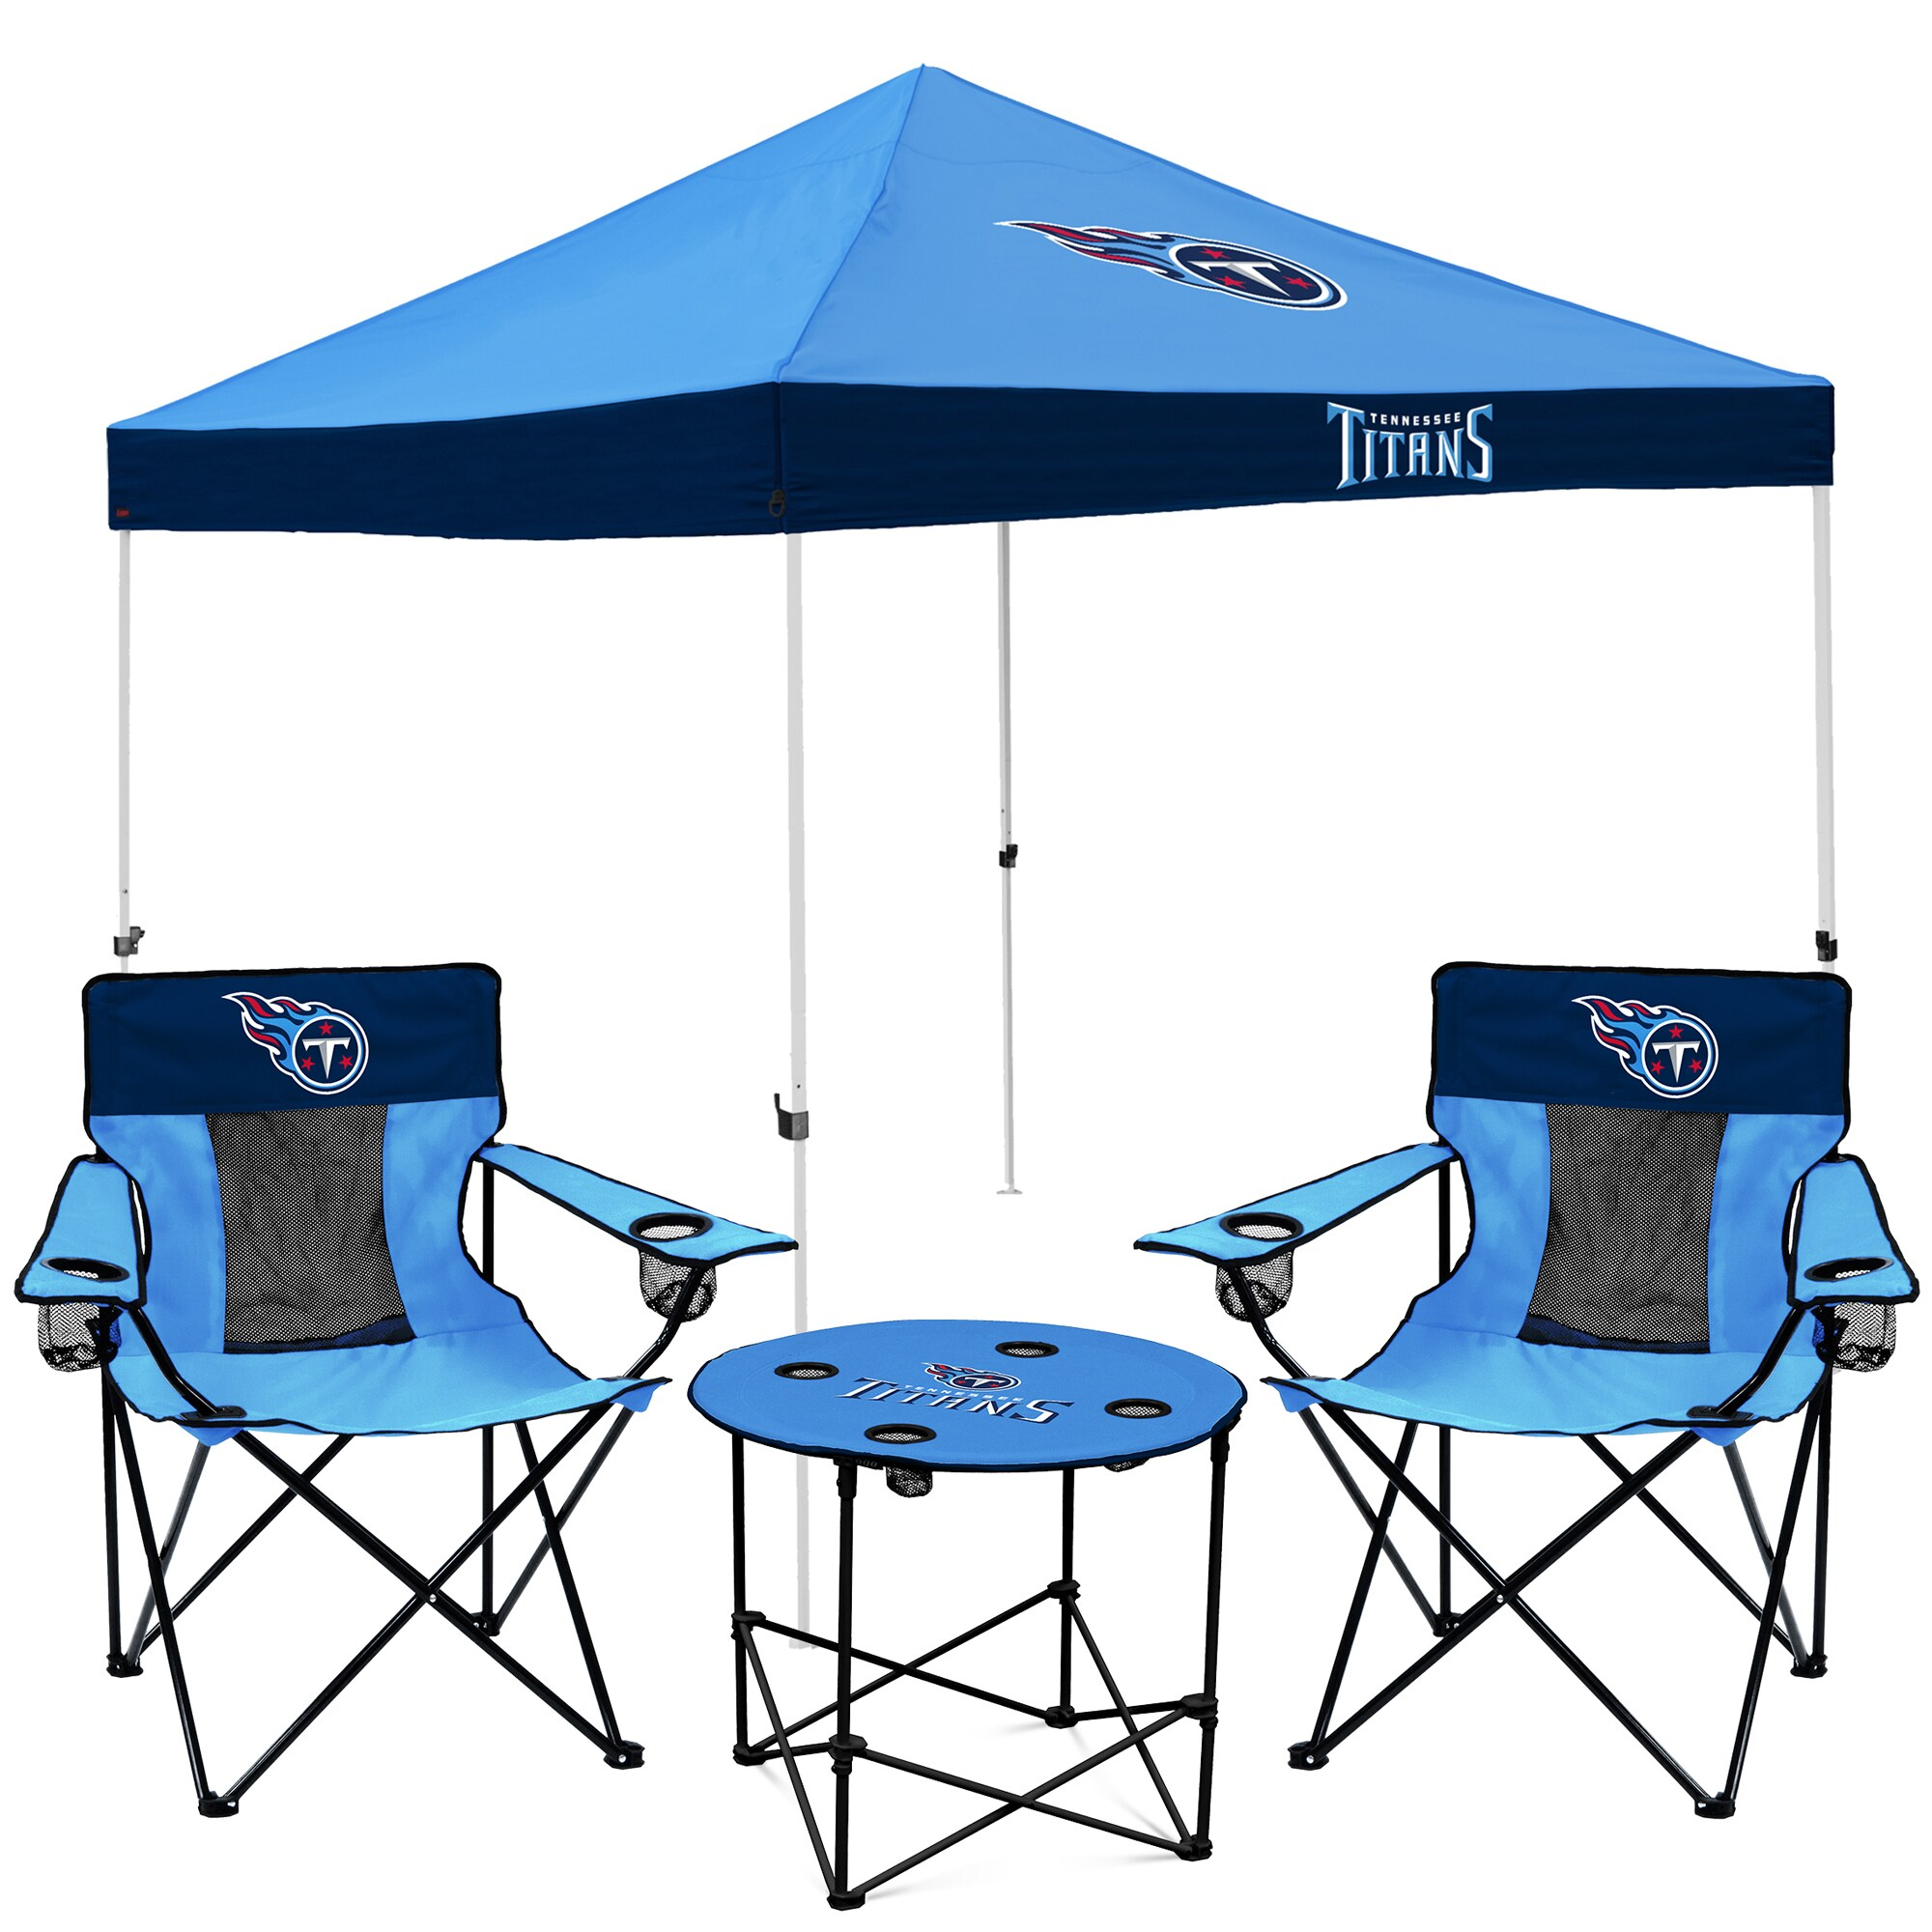 Tennessee Titans Tailgate Canopy Tent, Table, & Chairs Set